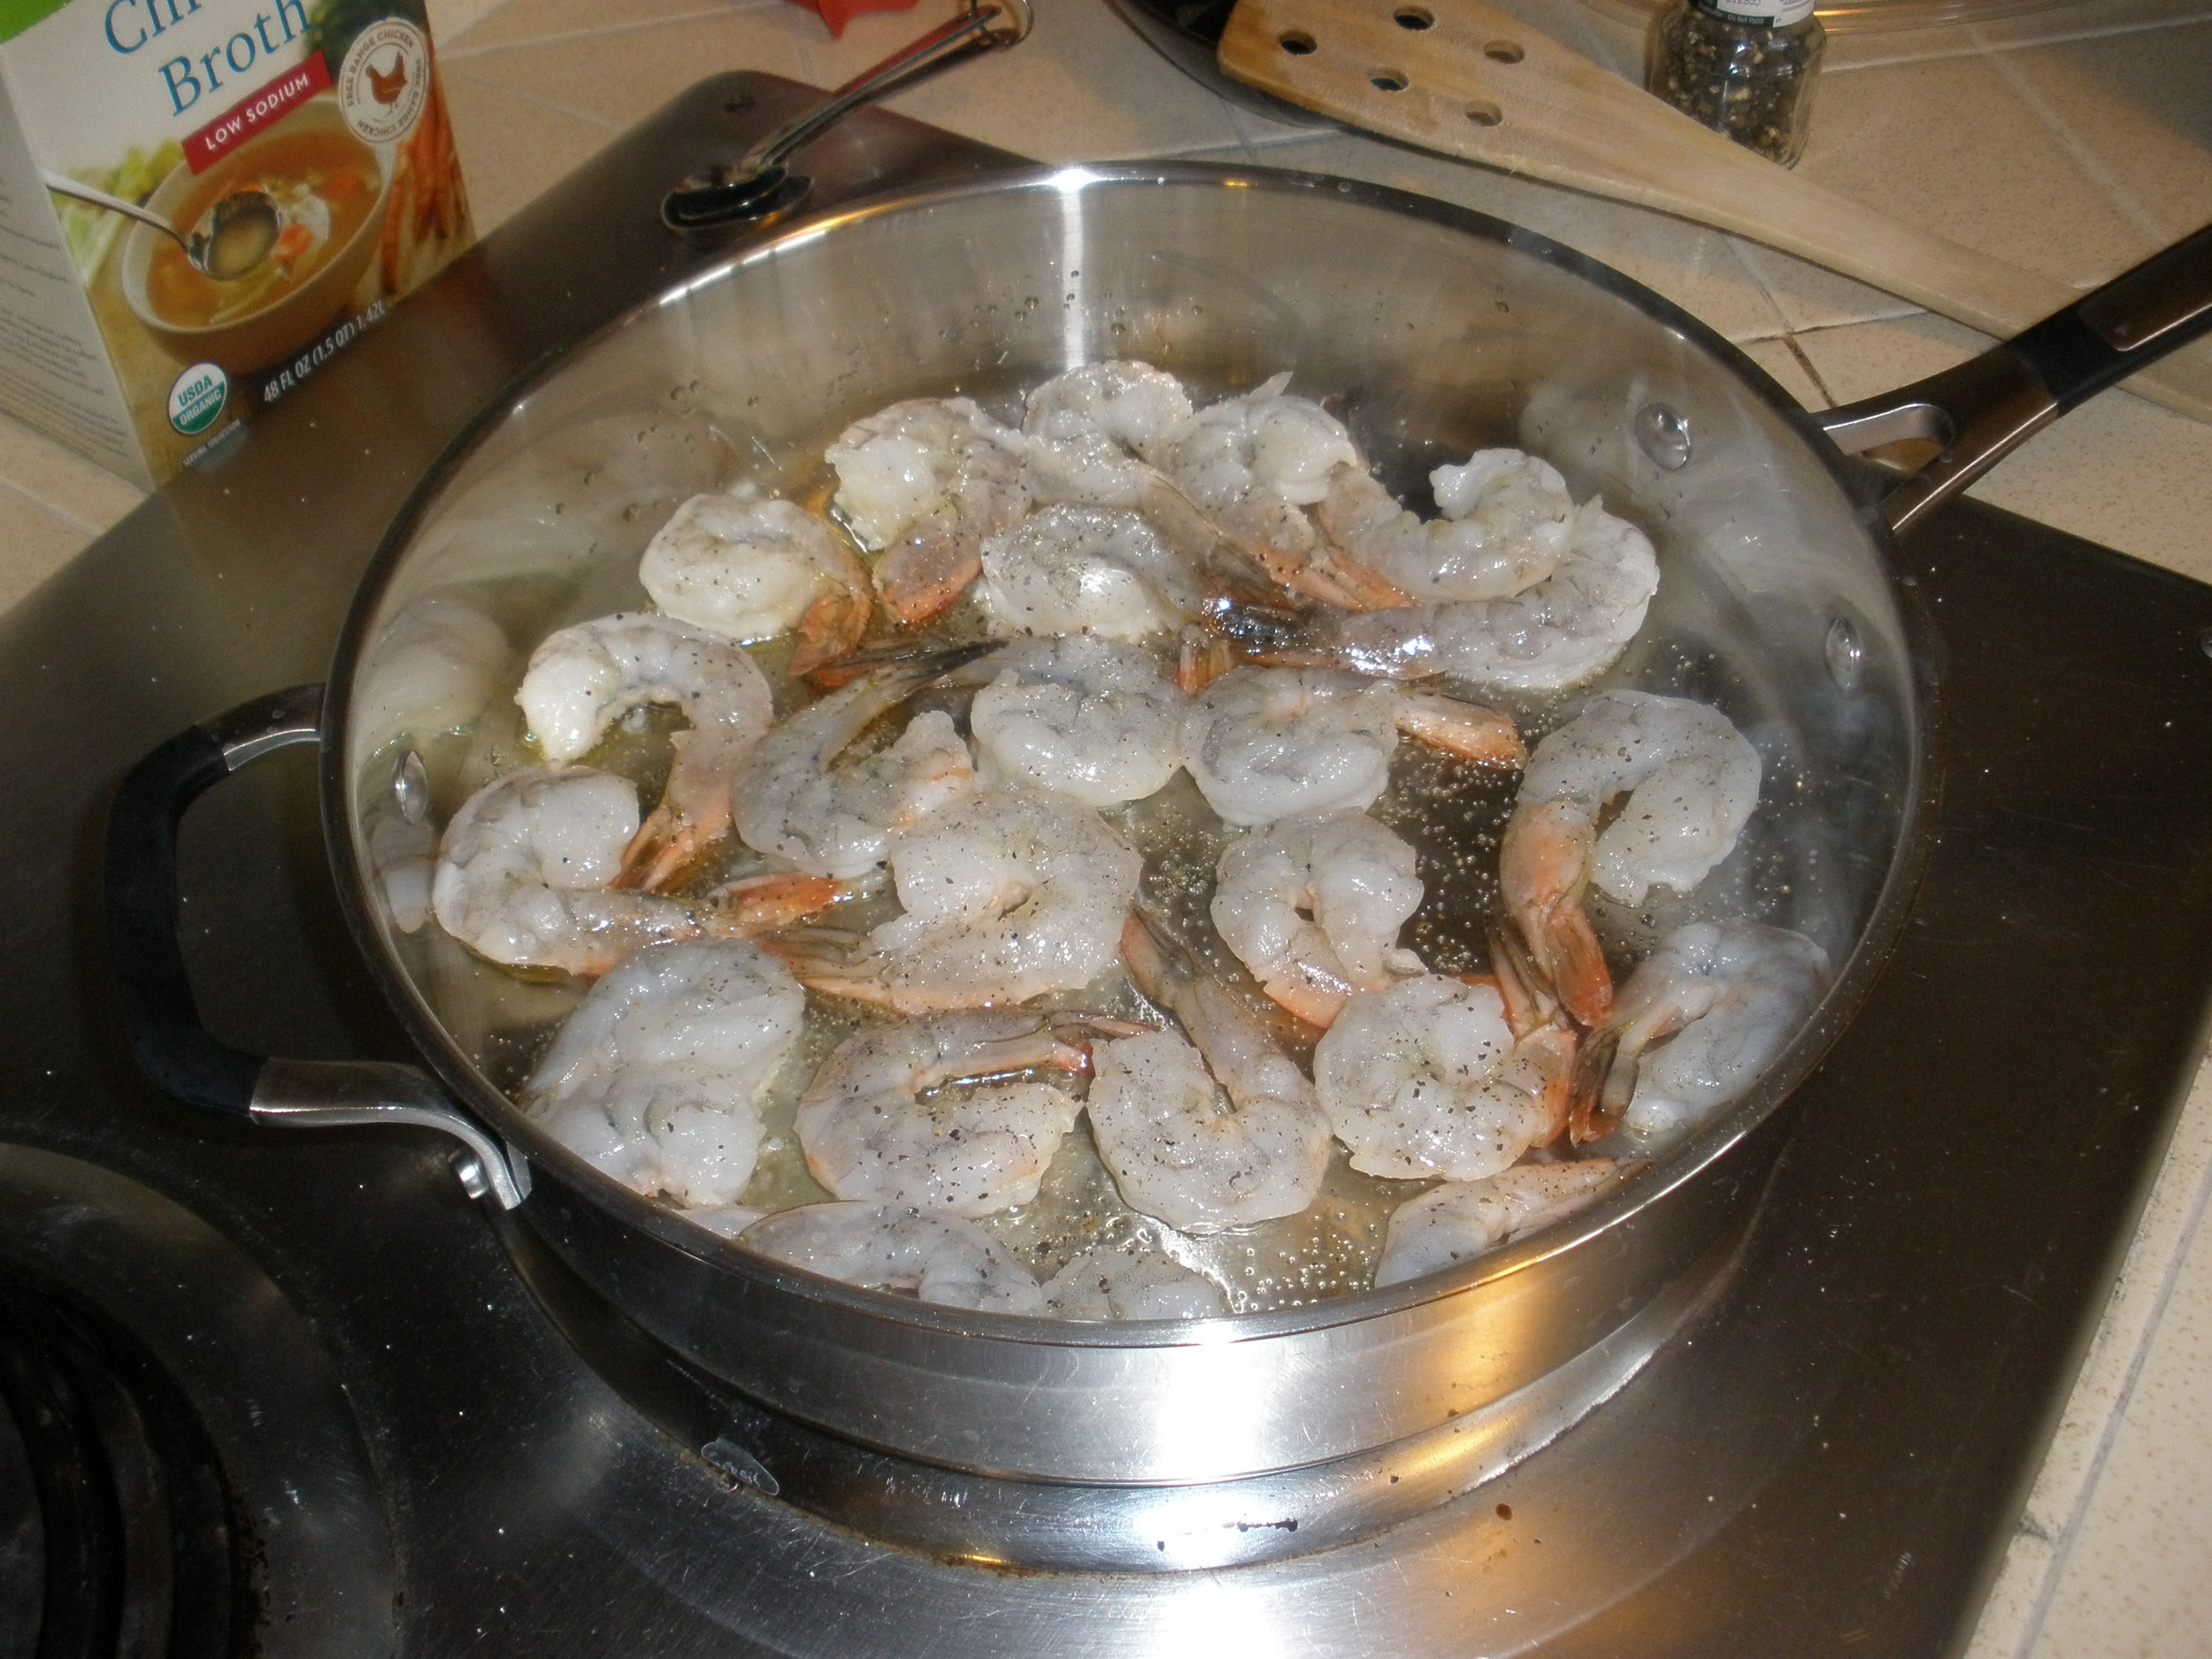 Step two: Salt and pepper shrimp, then cook in batches and set aside.